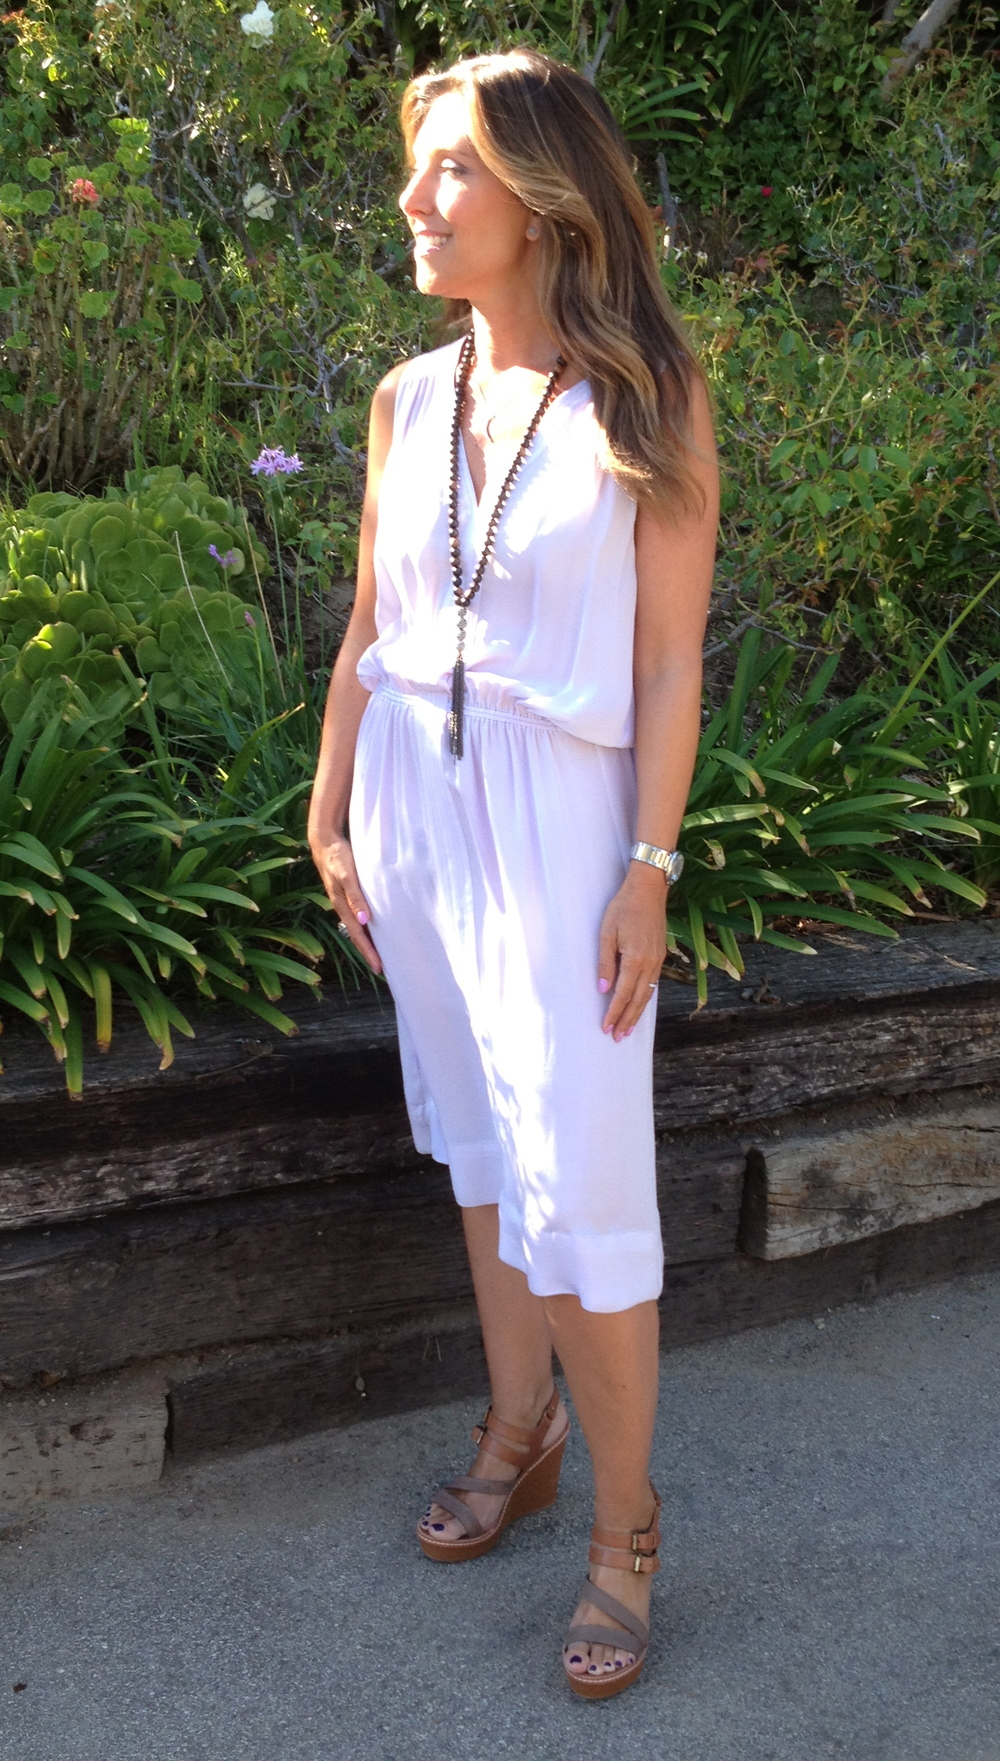 Dress:  A.L.C.  (no longer available). Shoes:  DV Dolce Vita Wedge Sandals, reg. $89; sale, $62.30